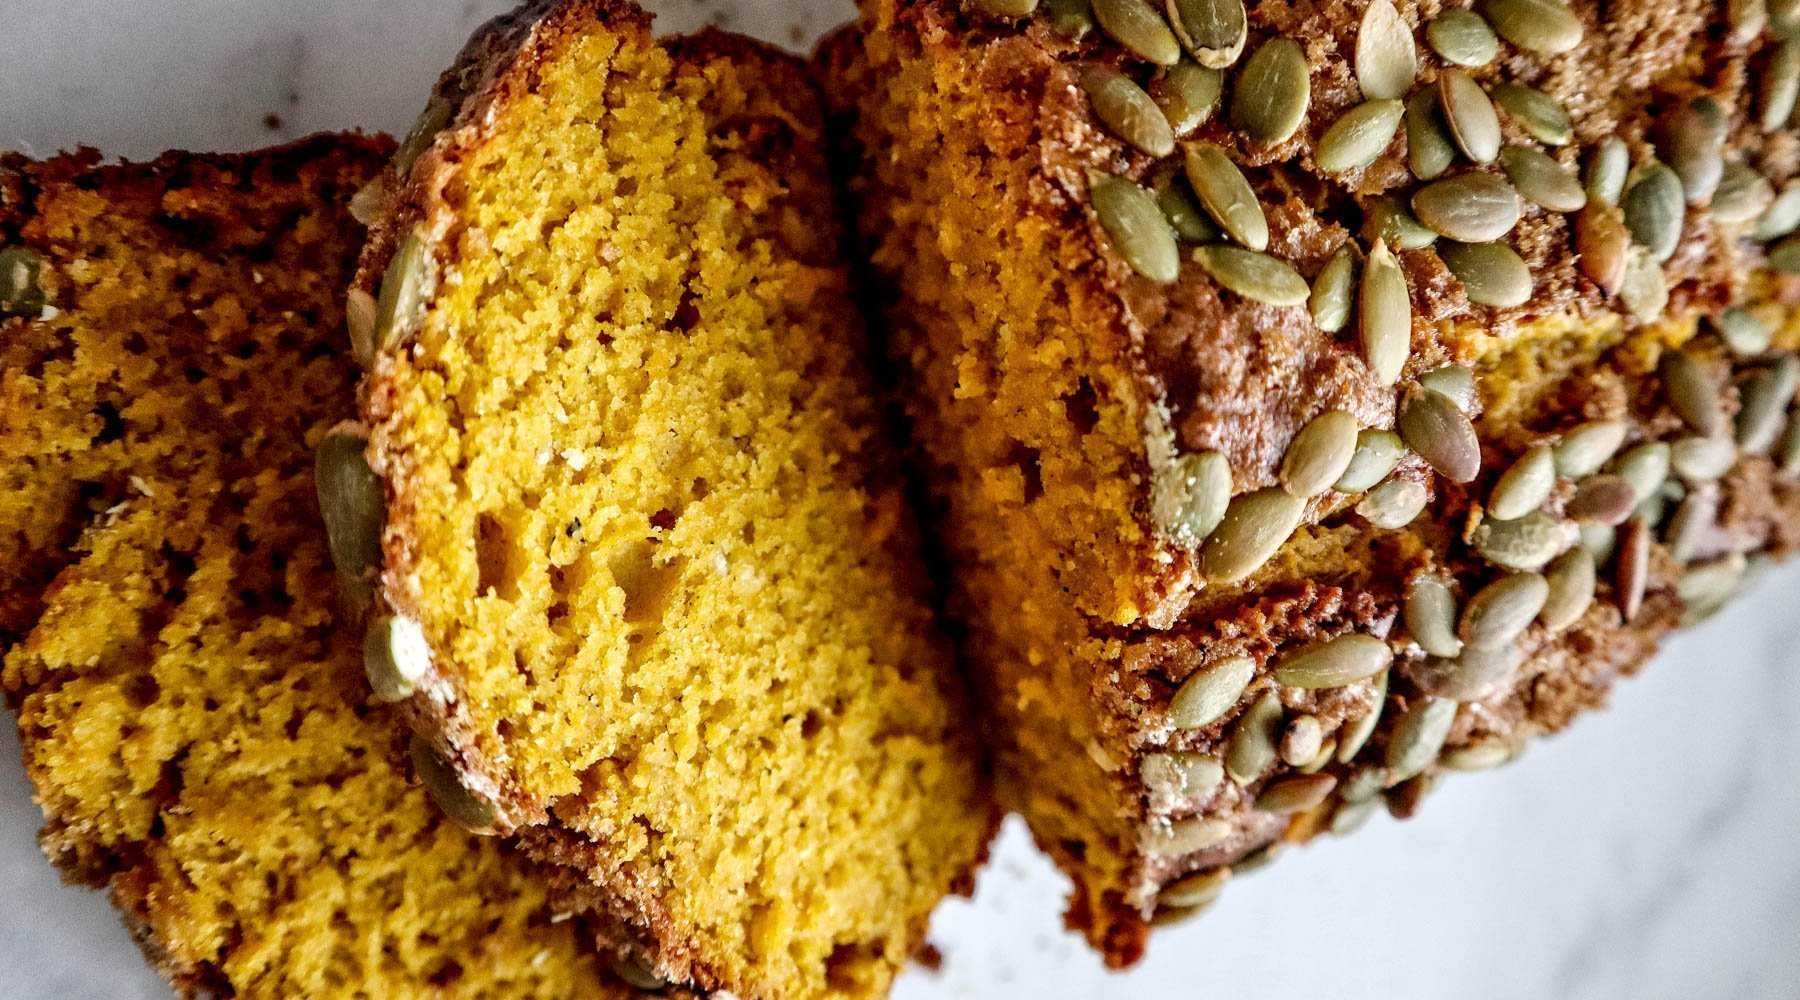 Local Spiced pumpkin bread by Reece Hignell at Your Food Collective